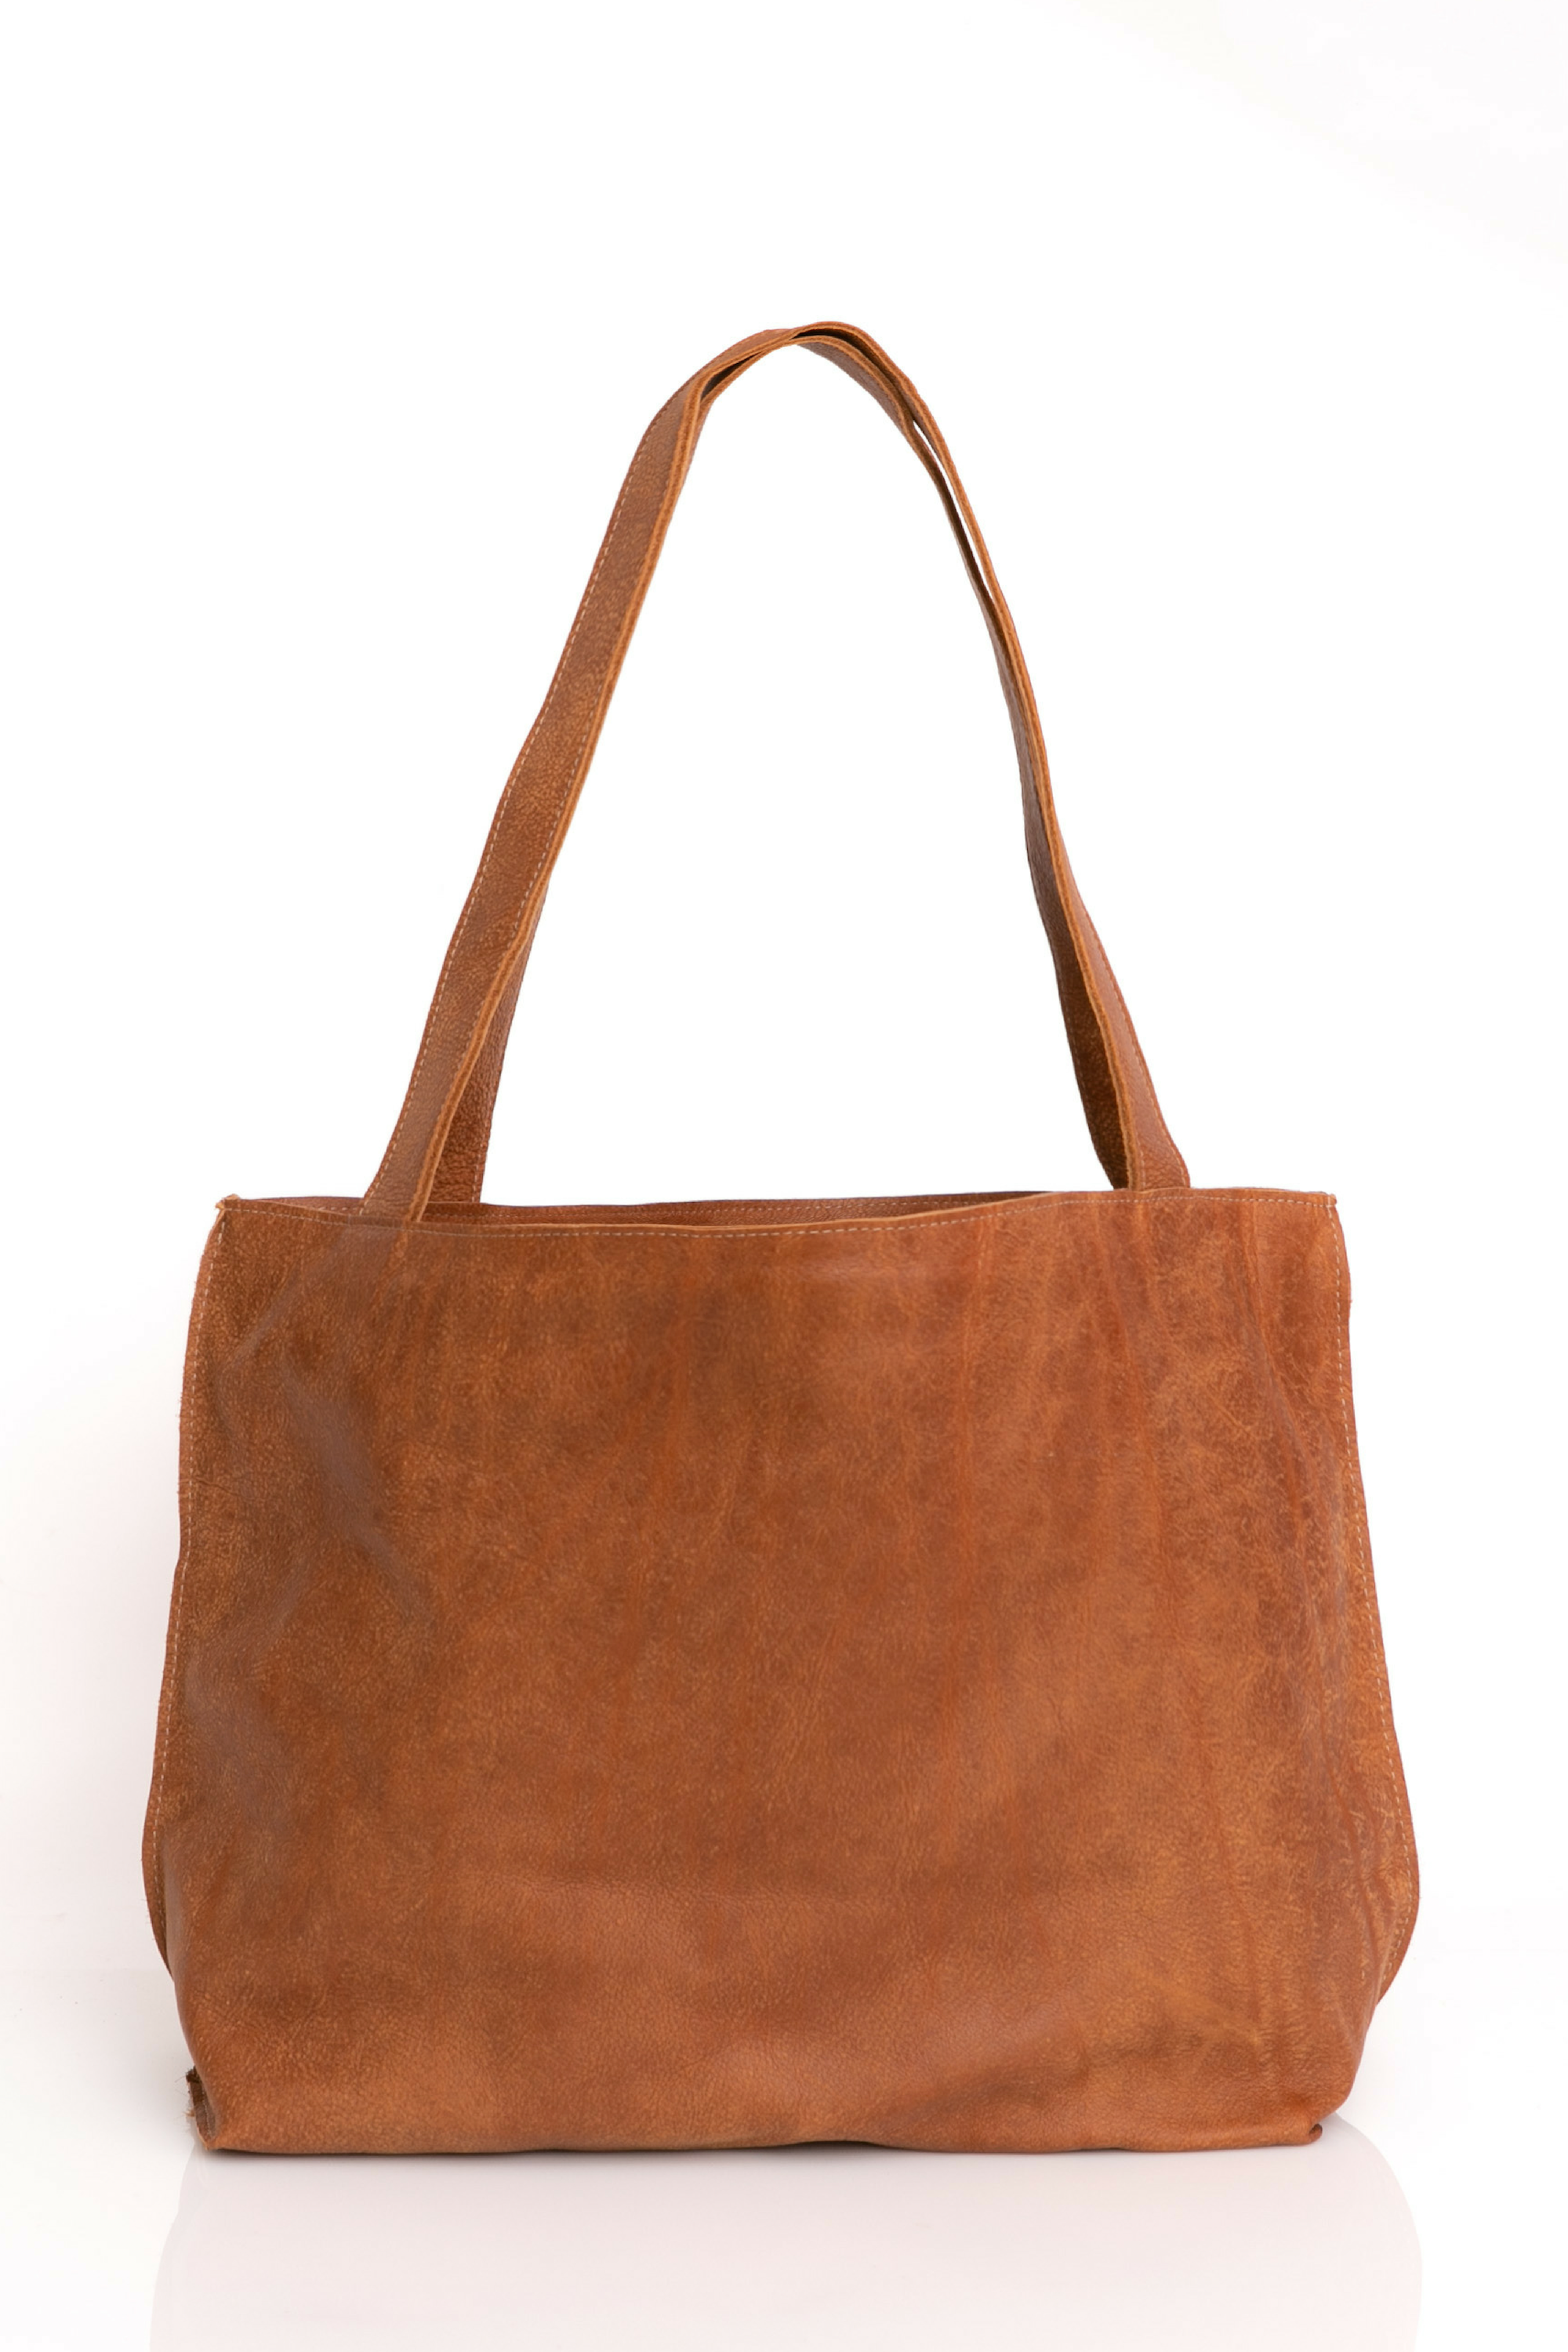 Faux leather Purse Large tote Mothers day Made to order Zippered tote bag Shoulder bag Custom leather tote Large handbag